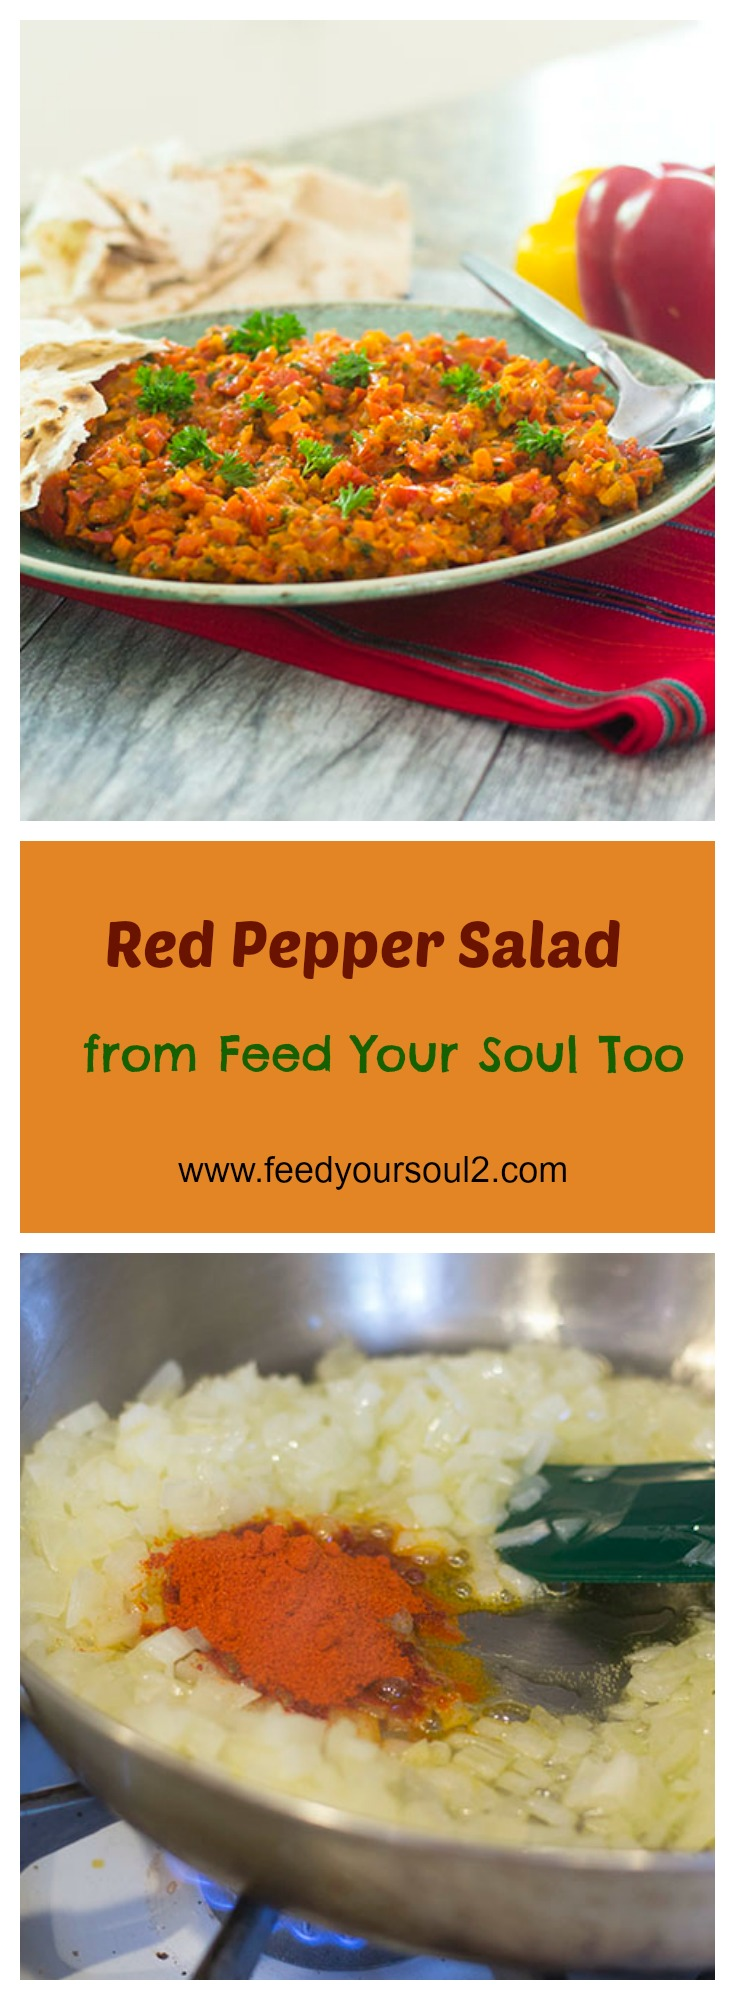 Red Pepper Salad a la Zahav #vegan #redbellpeppers #appetizer | feedyoursoul2.com